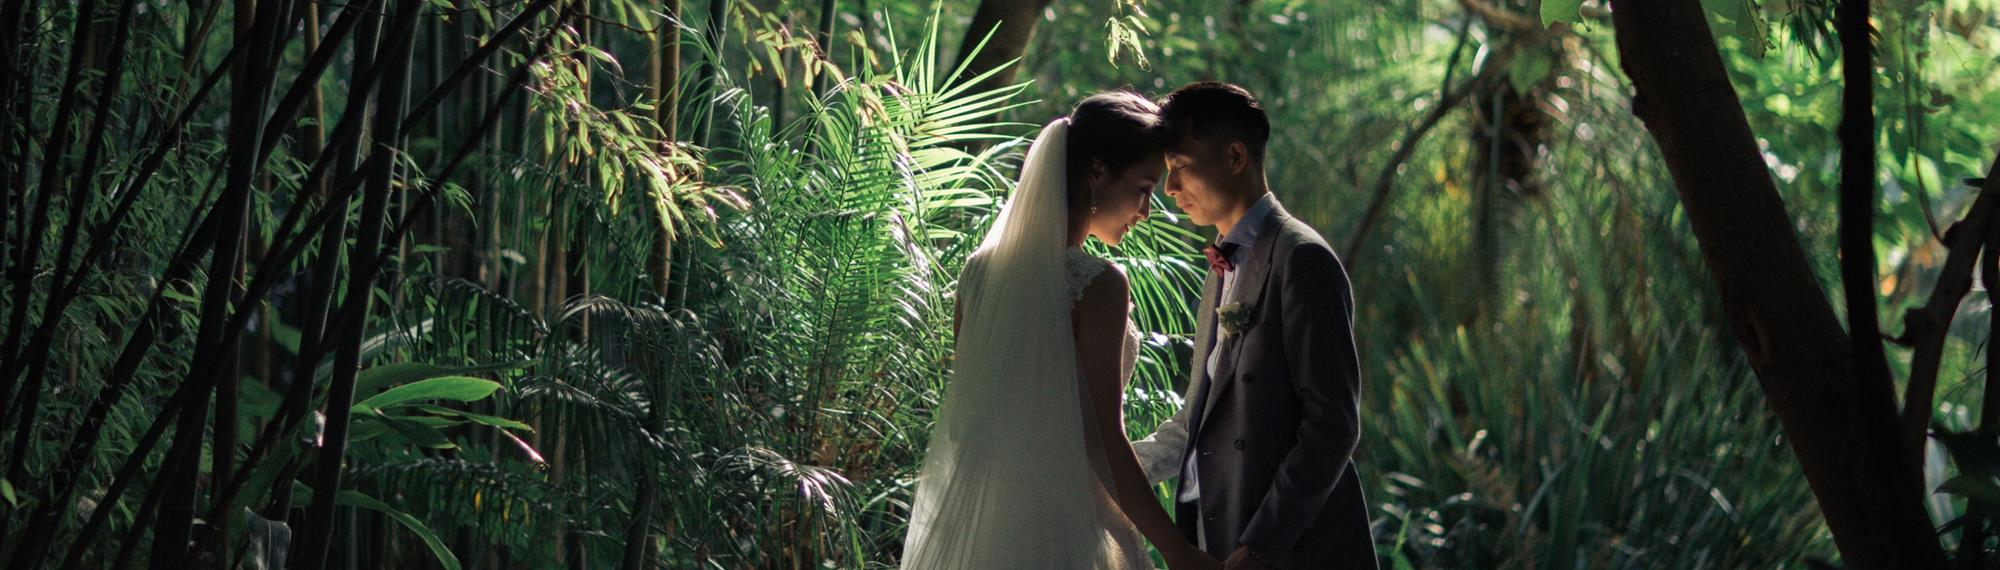 Bride and groom gazing into each others eyes while holding hands. Set in a lush rain forest setting.